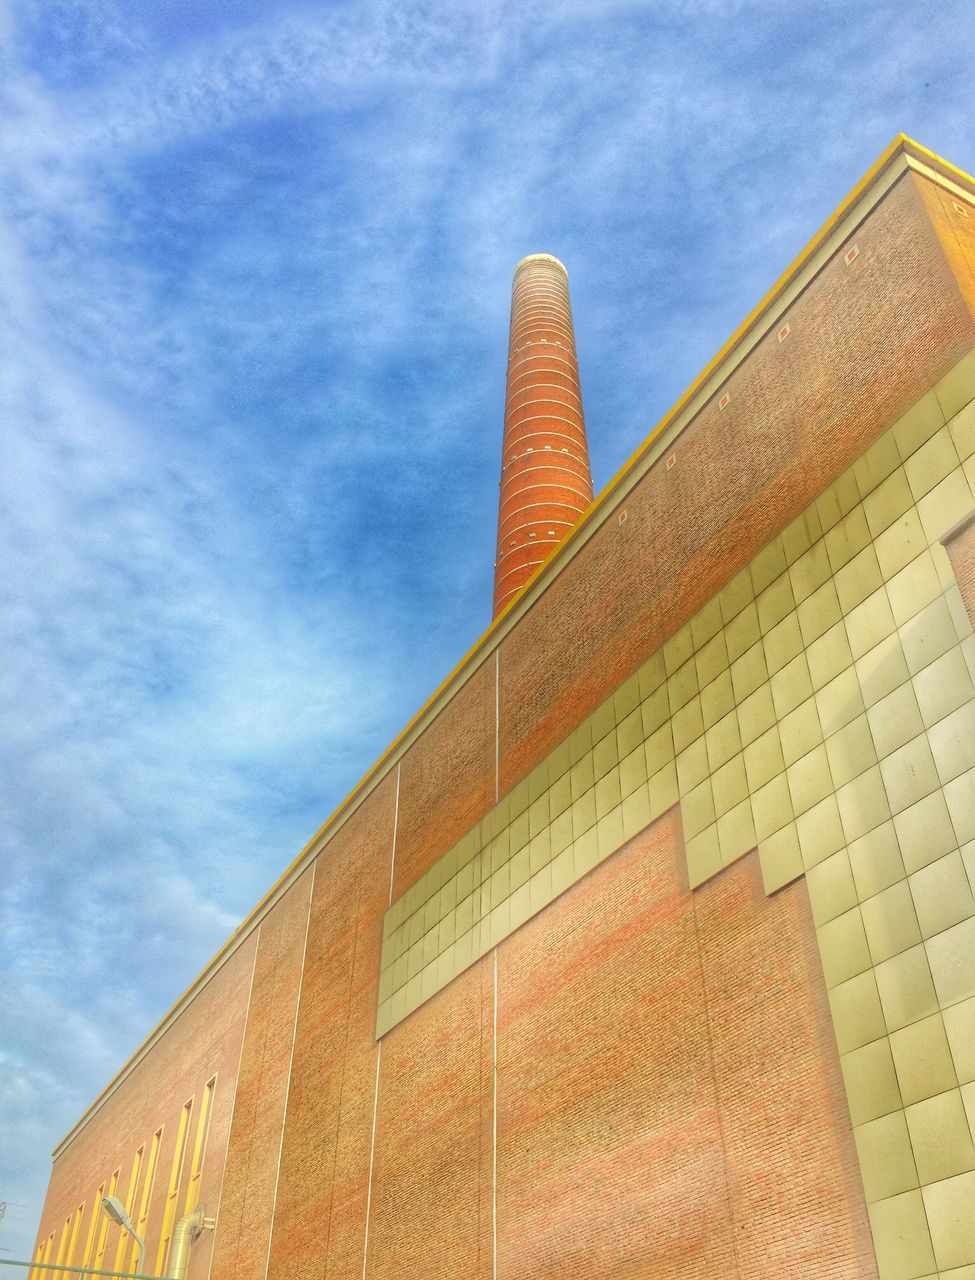 low angle view, built structure, architecture, sky, building exterior, day, no people, cloud - sky, outdoors, close-up